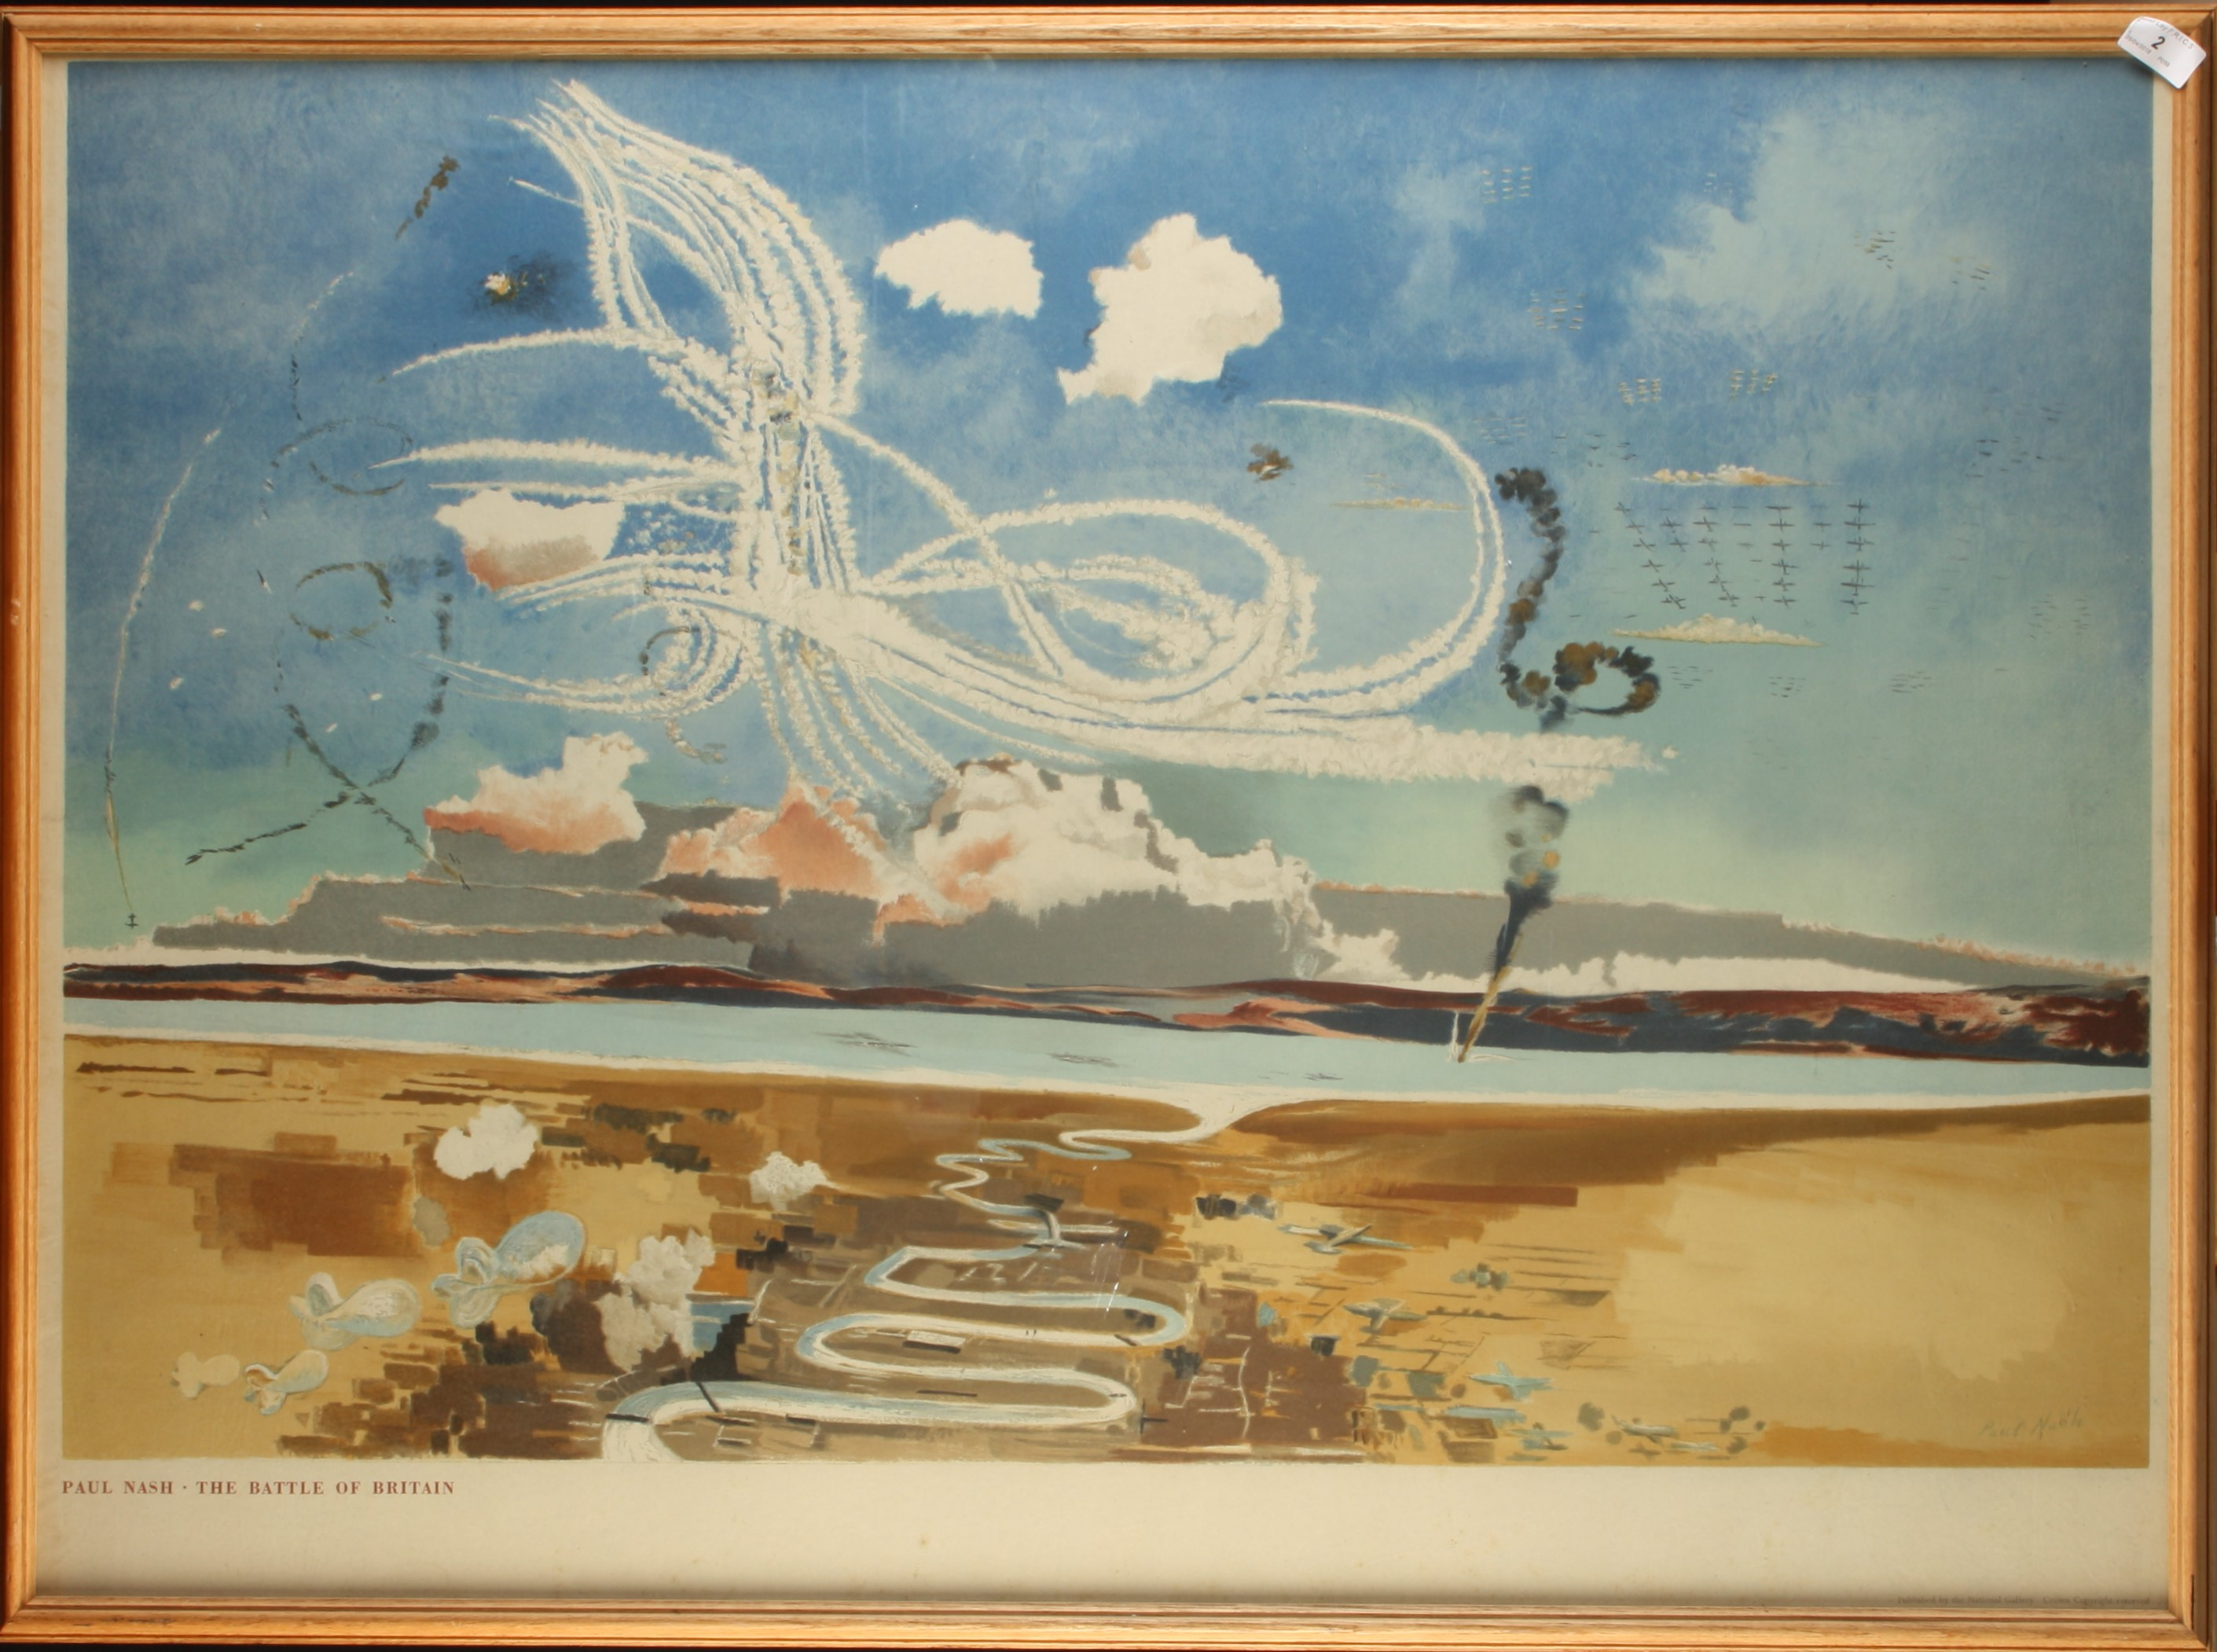 Lot 2 - Paul NASH The Battle of Britain (Postan L23) Lithograph Published by National Gallery for Ministry